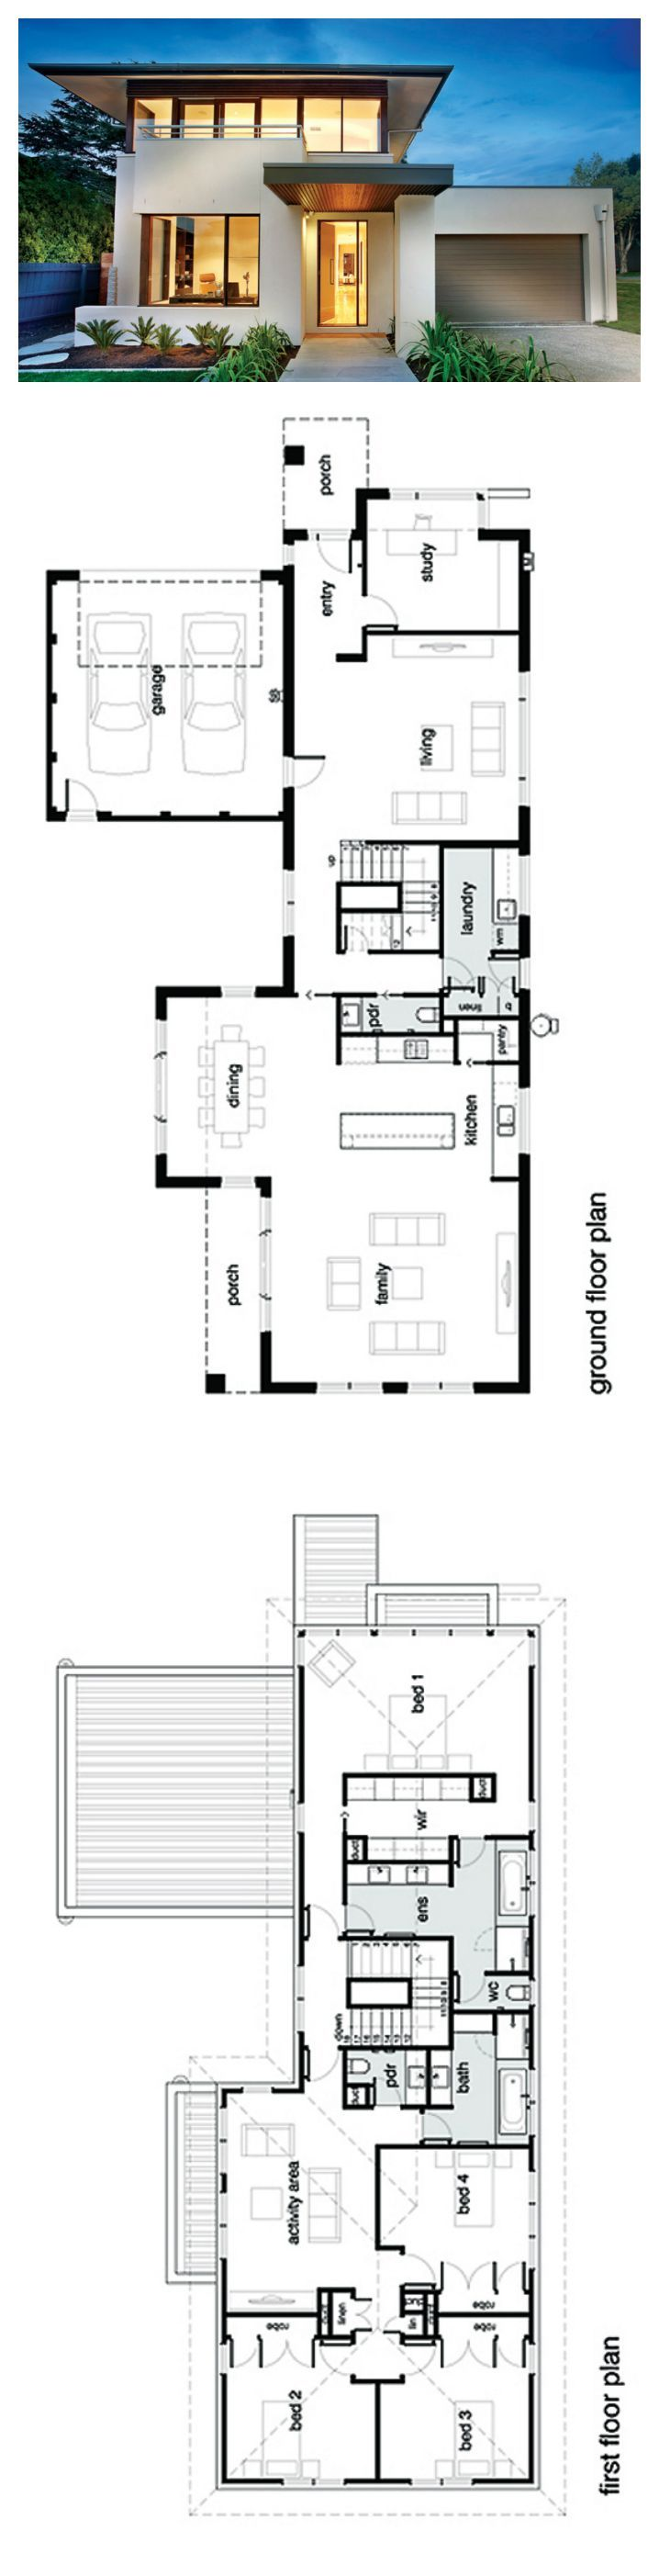 Best 25 modern house plans ideas on pinterest modern 4 bedroom modern house plans